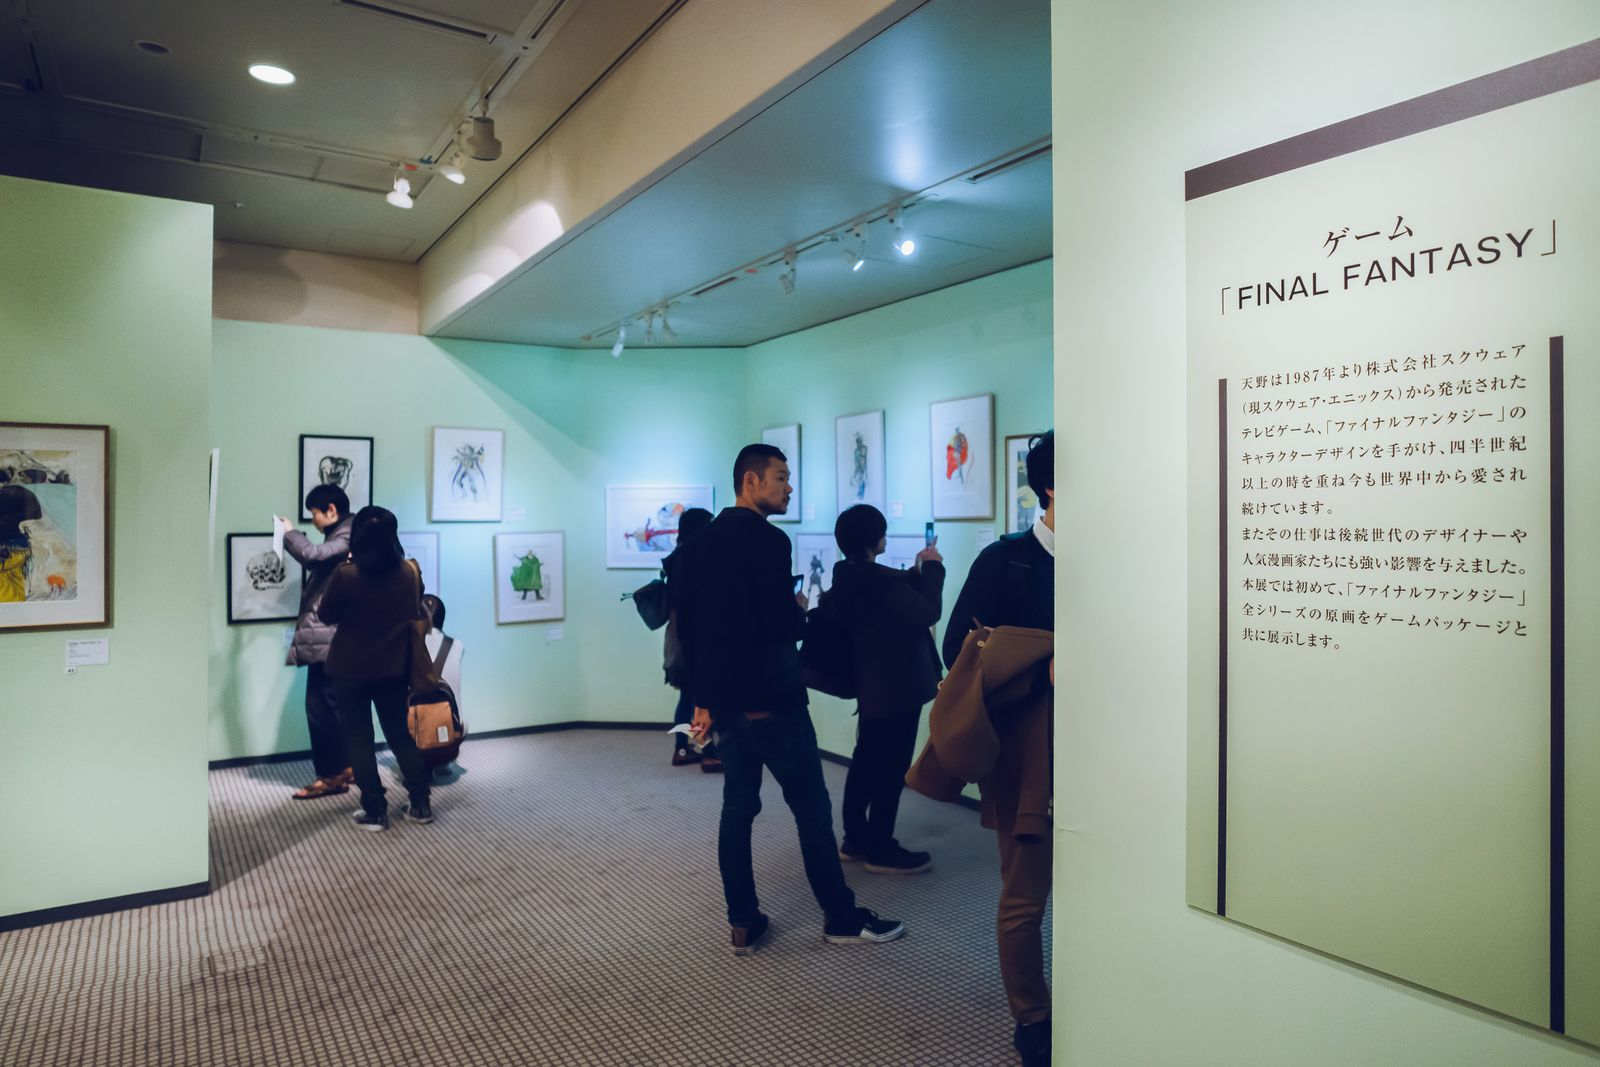 Final Fantasy 7 An Oral History Ceiling Fan Wiring Red Wire Click For Details Fantasia Fans When Polygon Visited Longtime Illustrator Yoshitaka Amano This Story He Dug Through His Archives And Found A Set Of Paintings Did